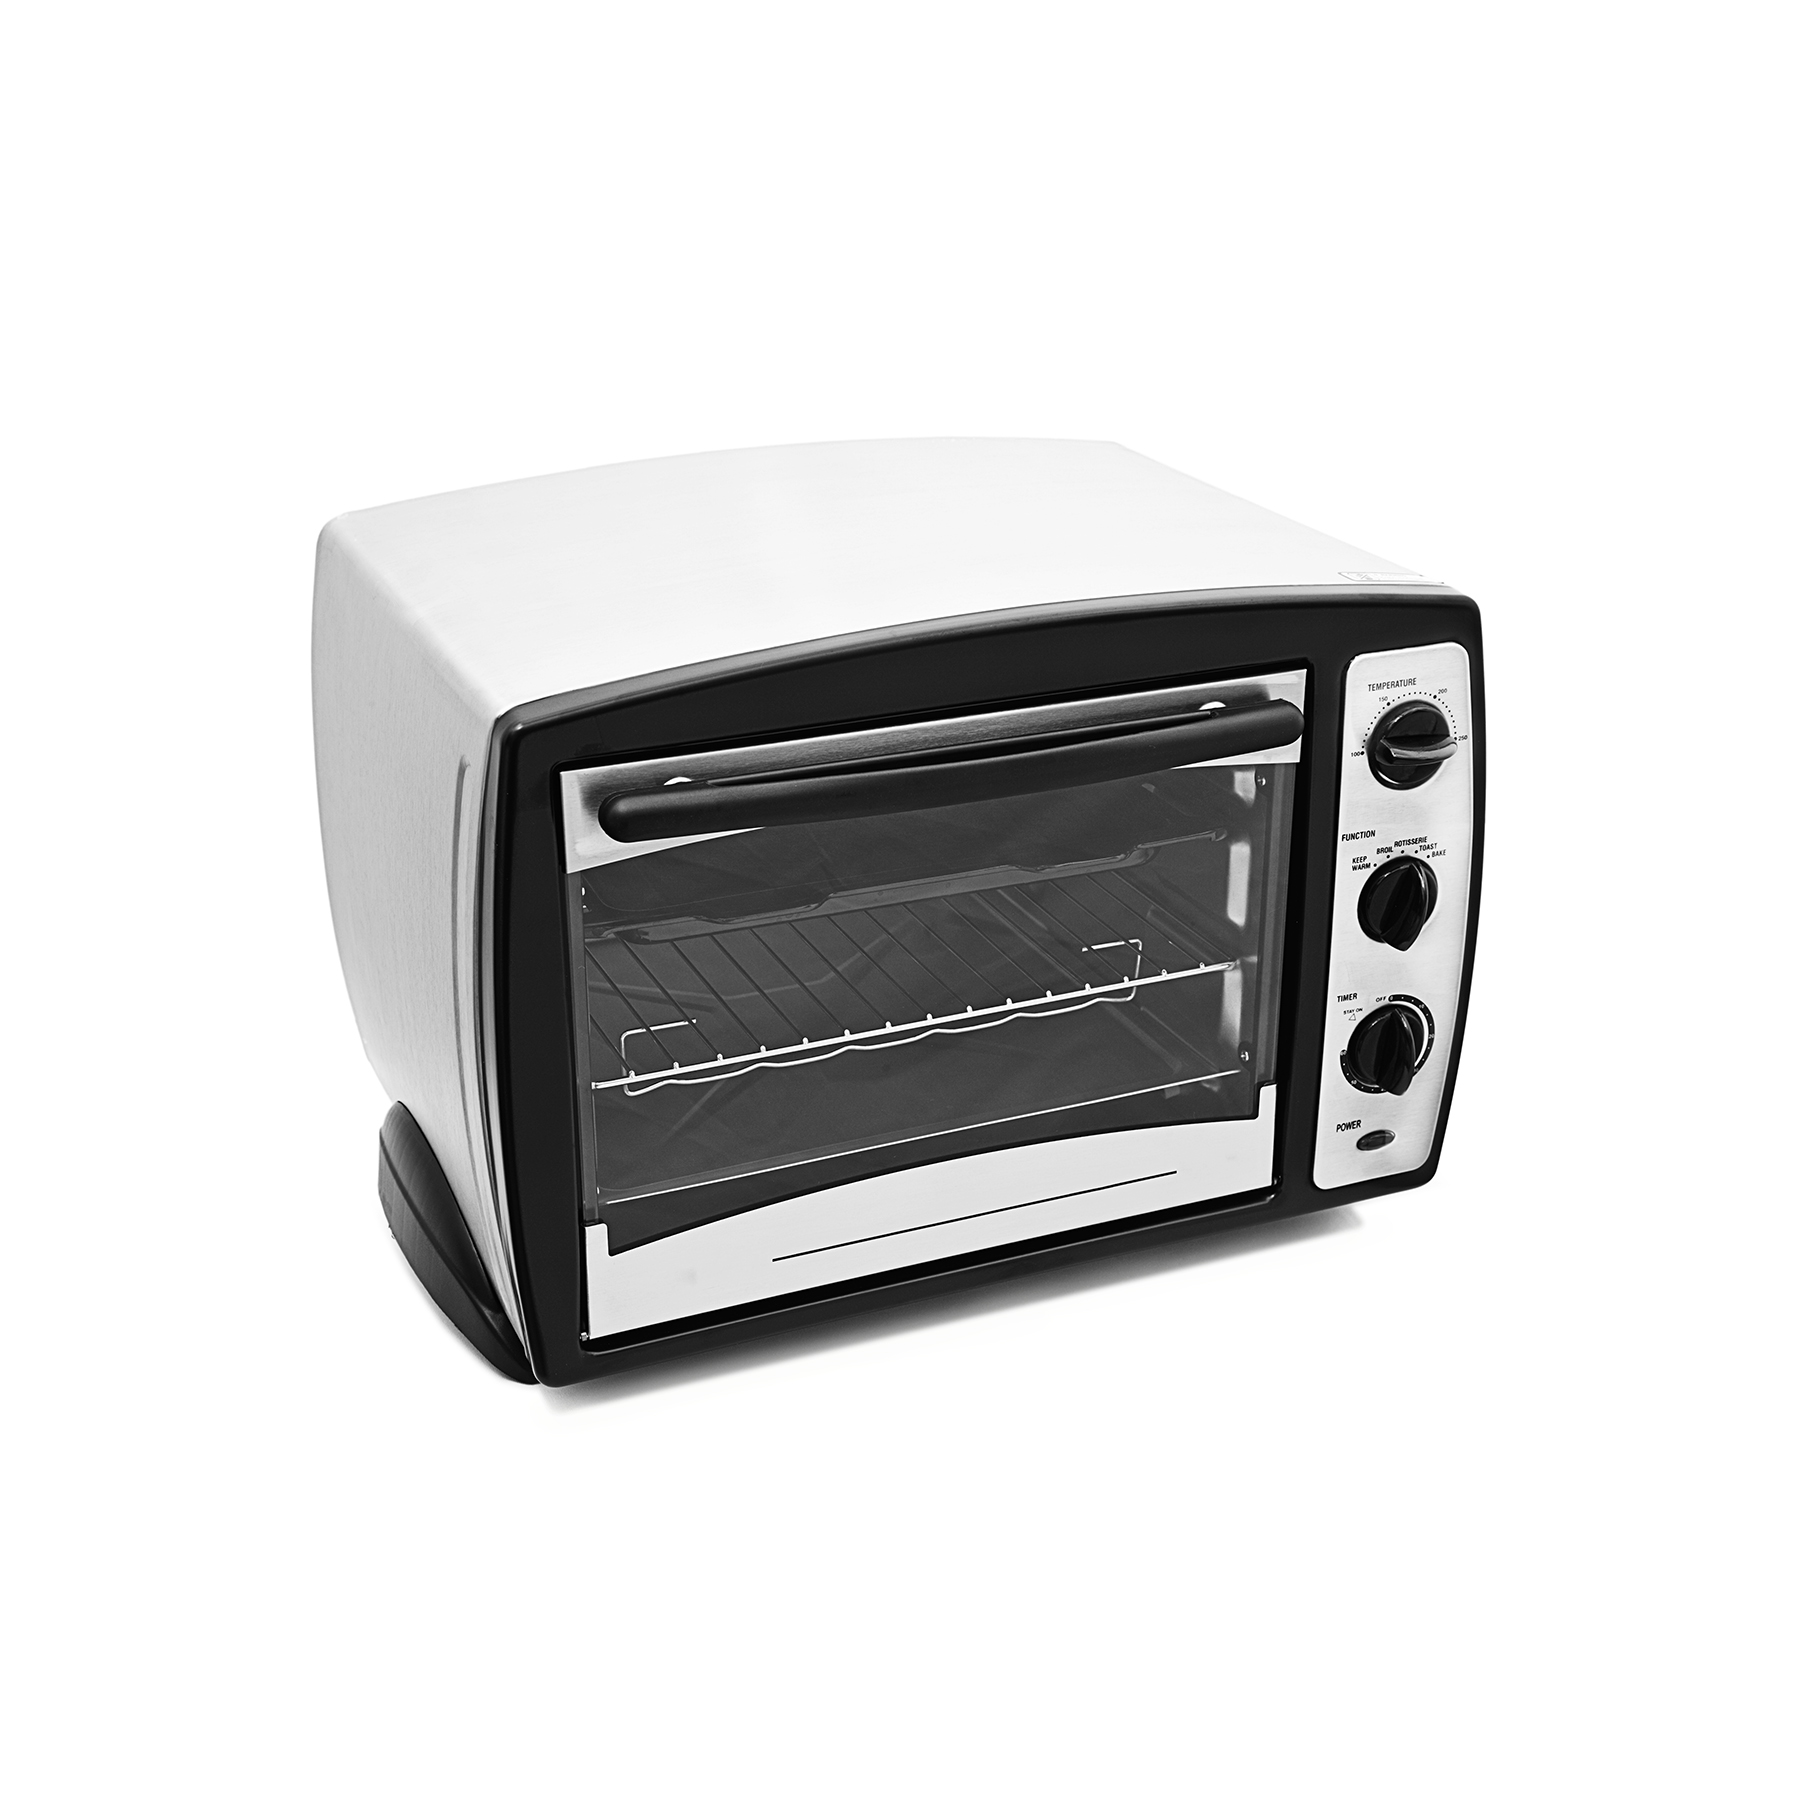 Toaster oven on white